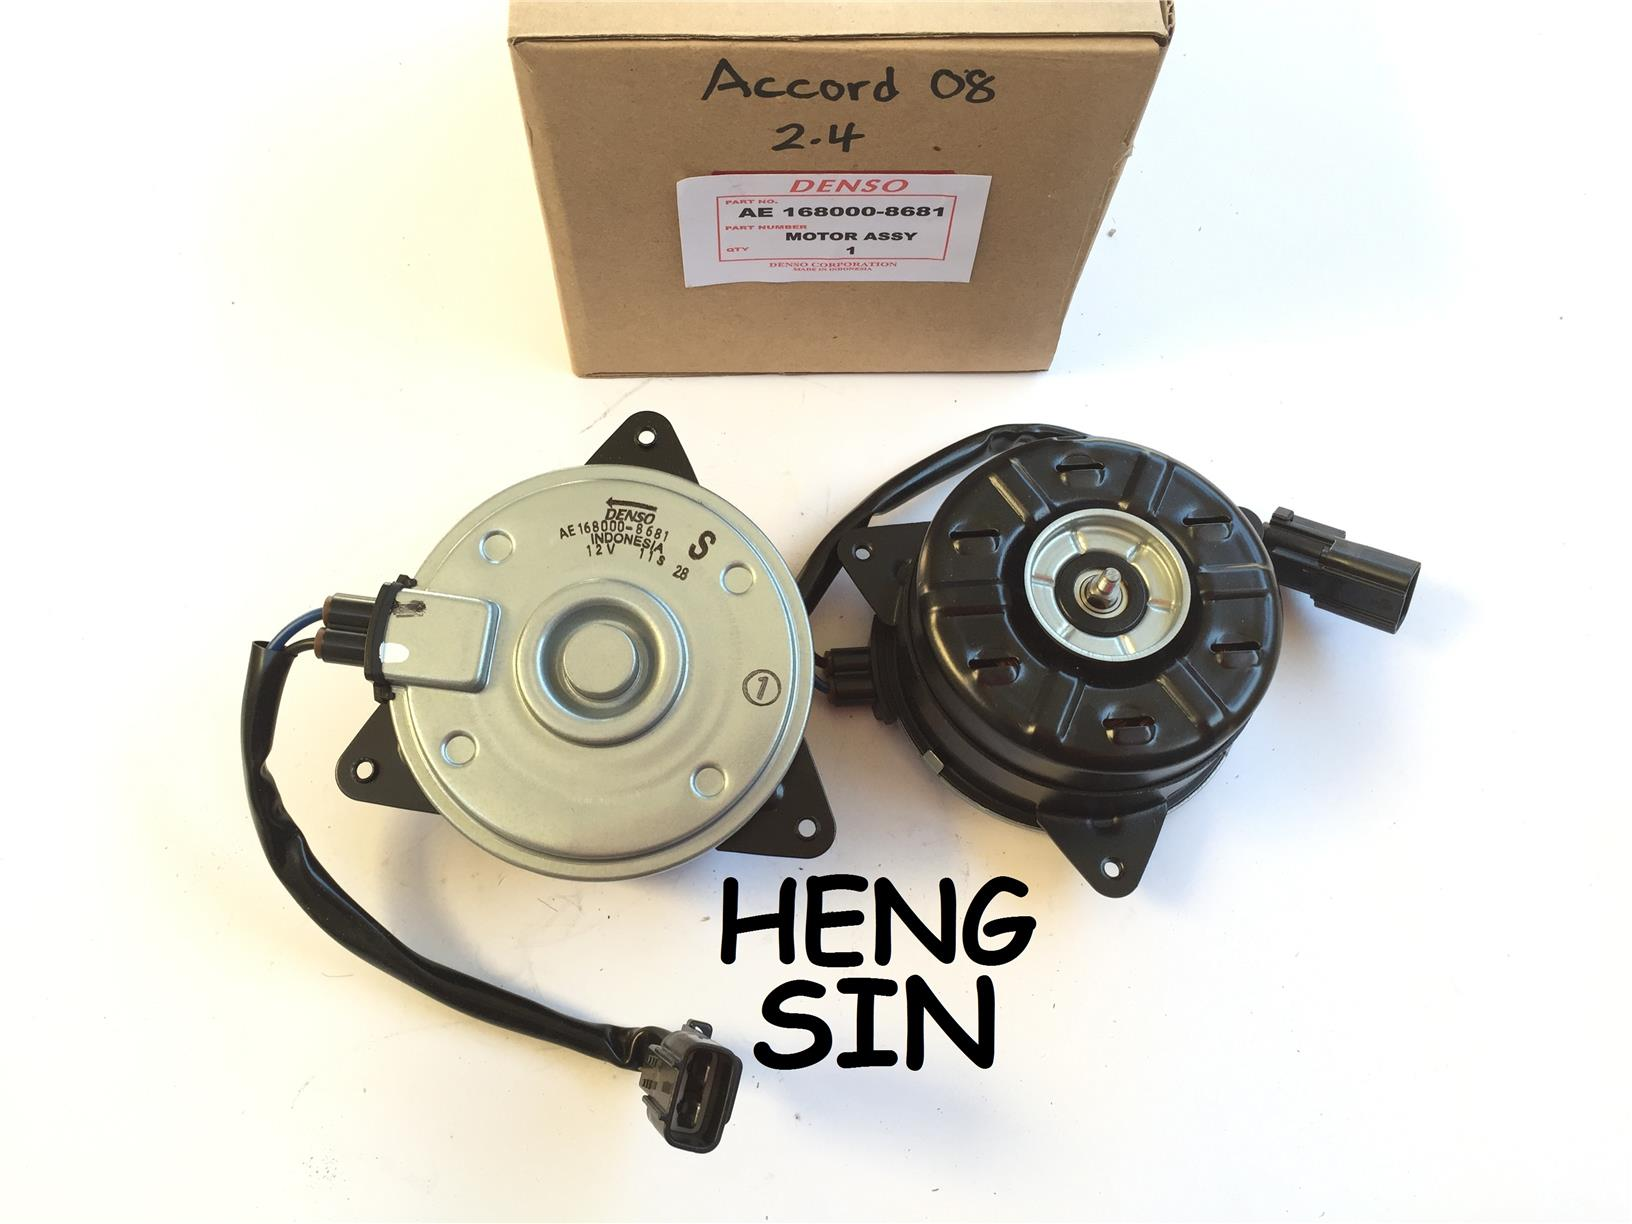 FAN MOTOR HONDA ACCORD 08 2.4 ORIGINAL DENSO